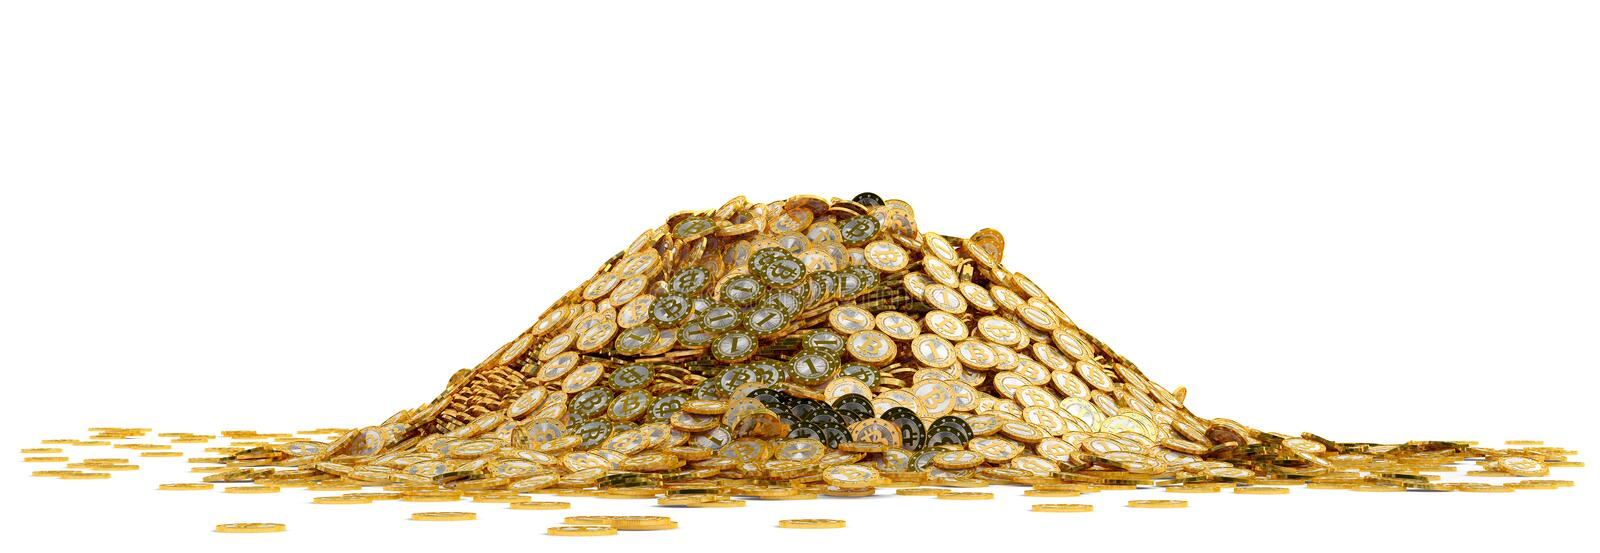 Big pile of golden Bitcoins - isolated on white. My own design for Bitcoins. Rendered with Blender 3D royalty free stock photo